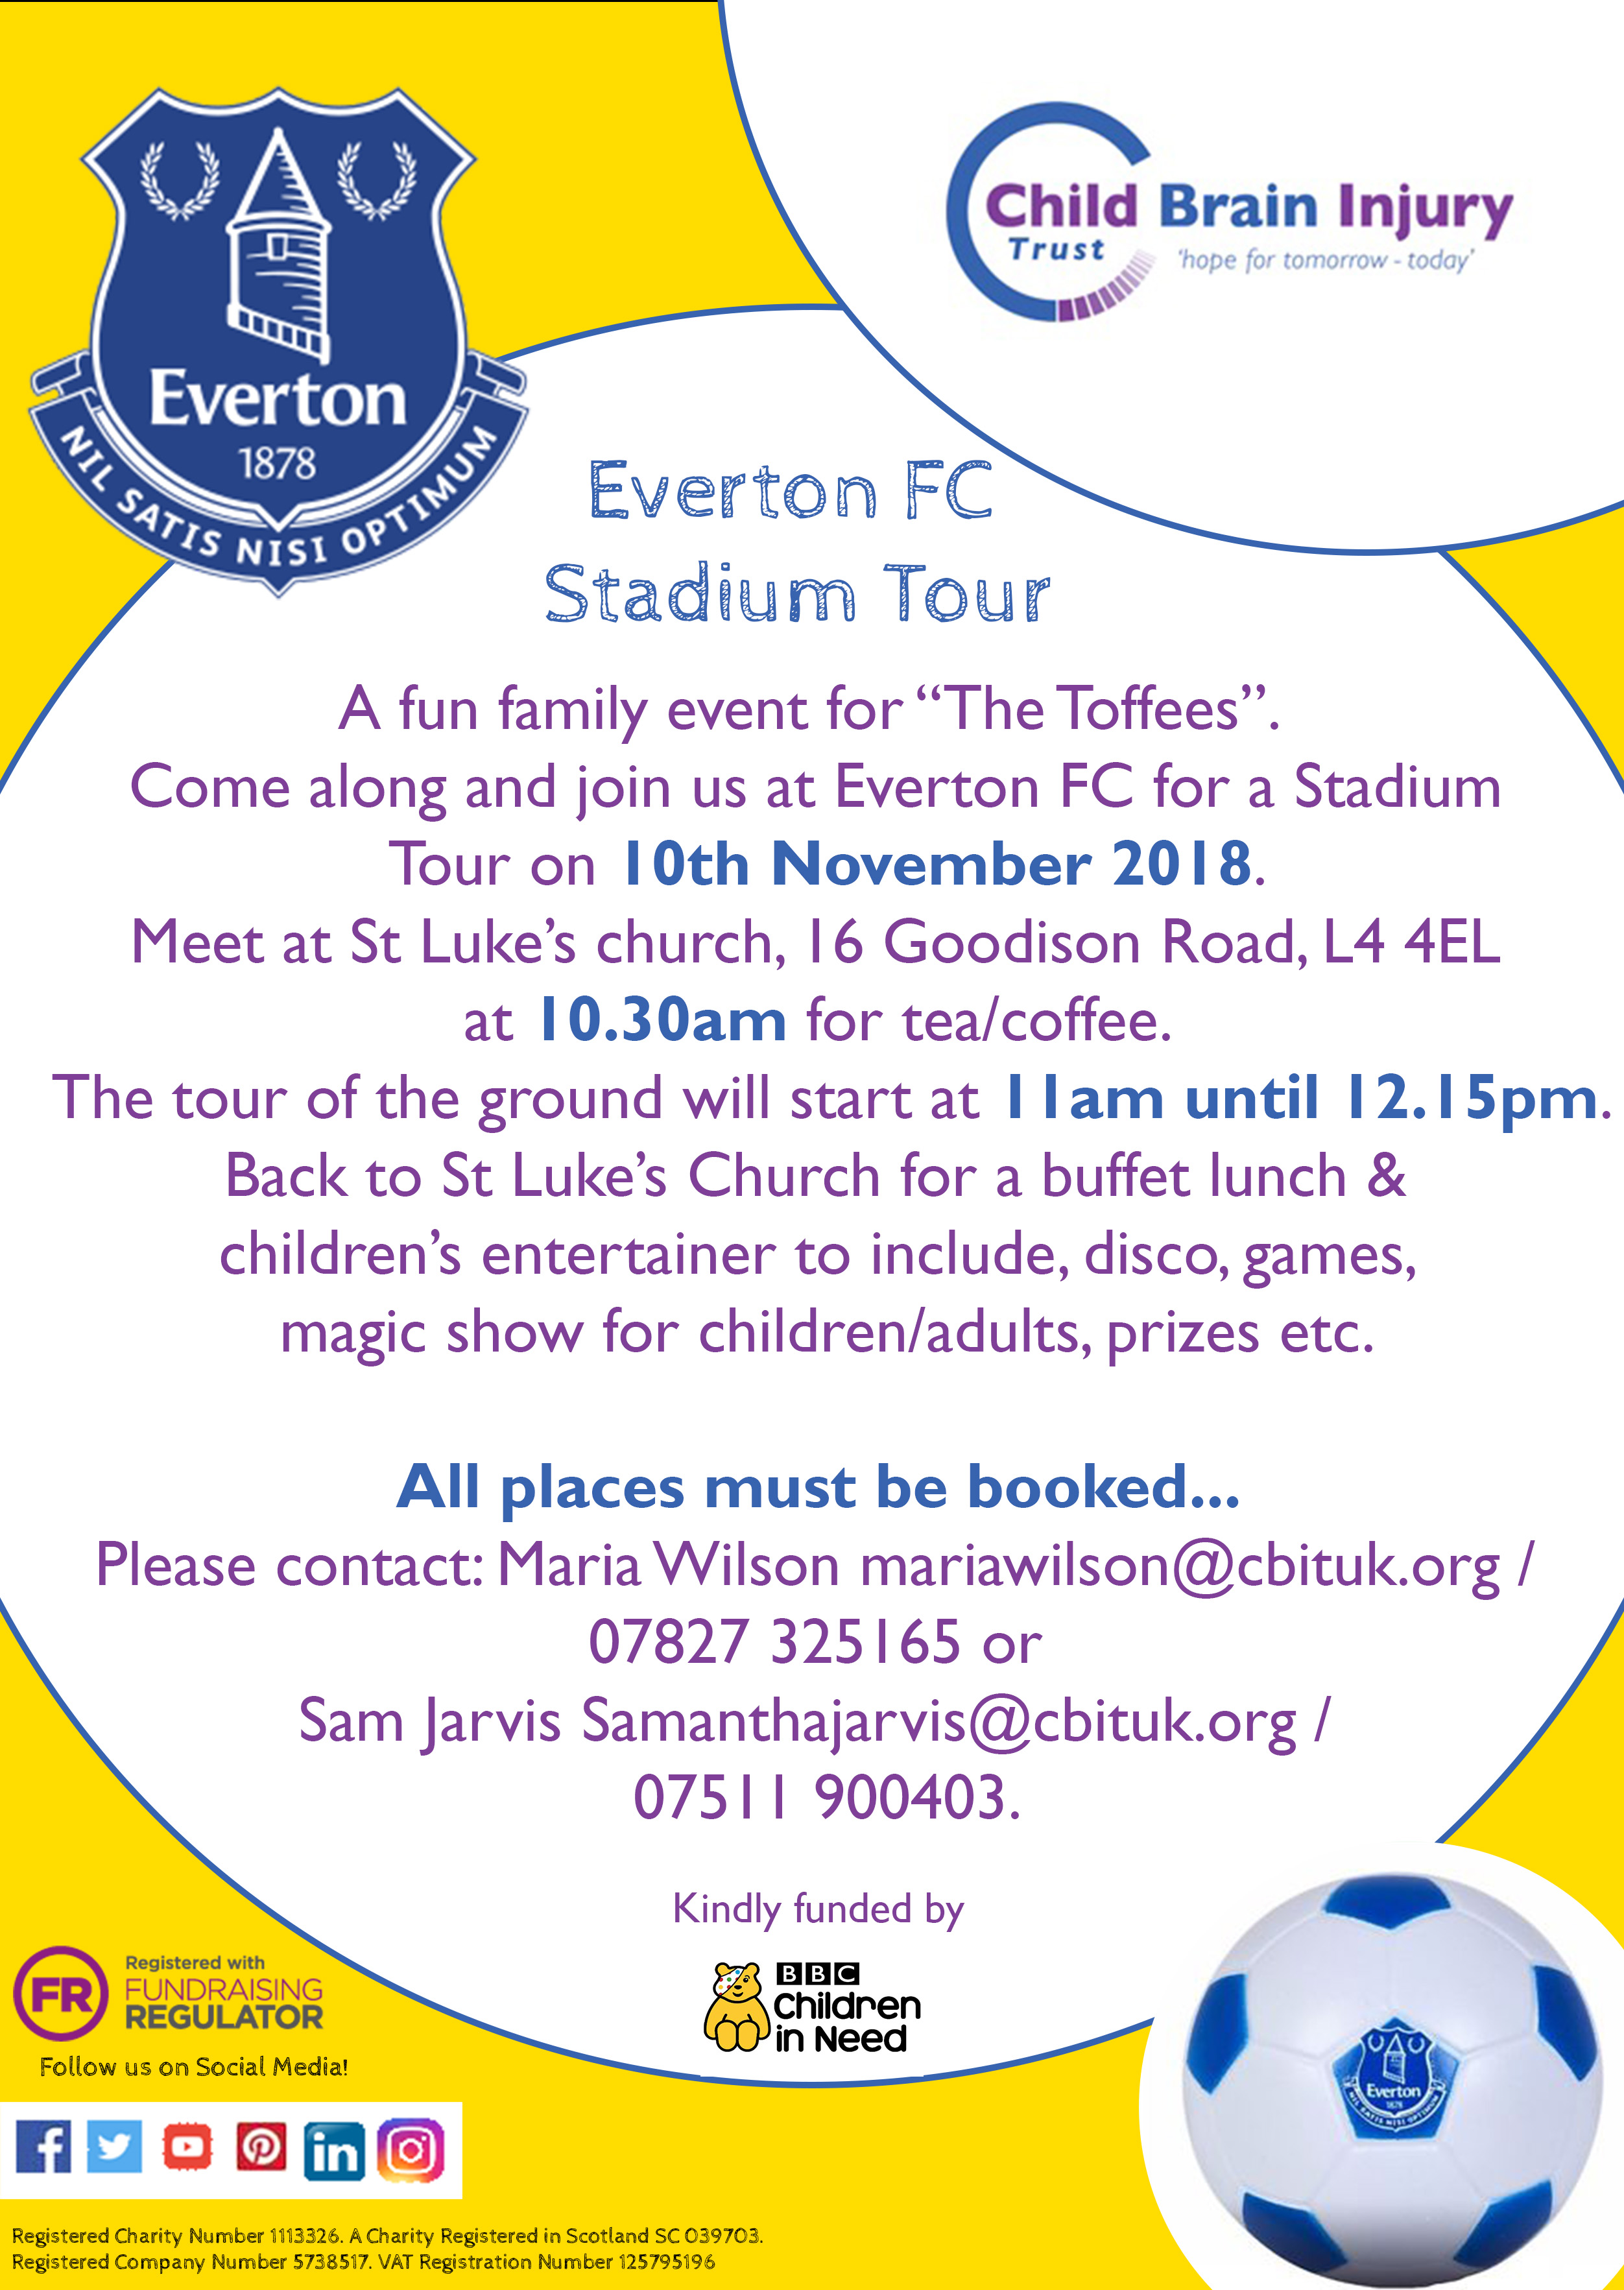 Everton stadium tour - Maria